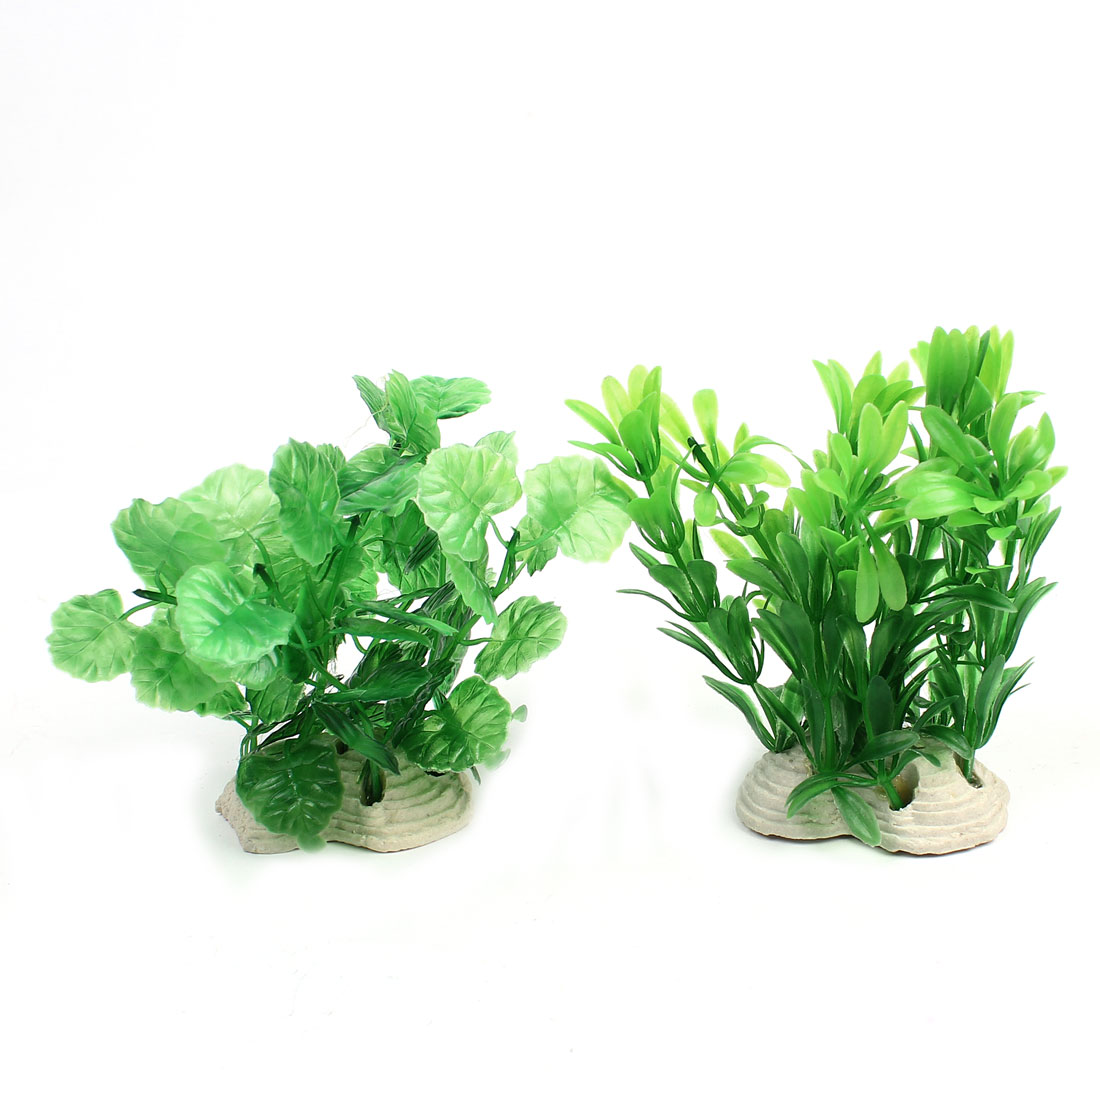 Aquarium Fishbowl Decor Green Leaves Plastic Underwater Plant 12cm 2Pcs